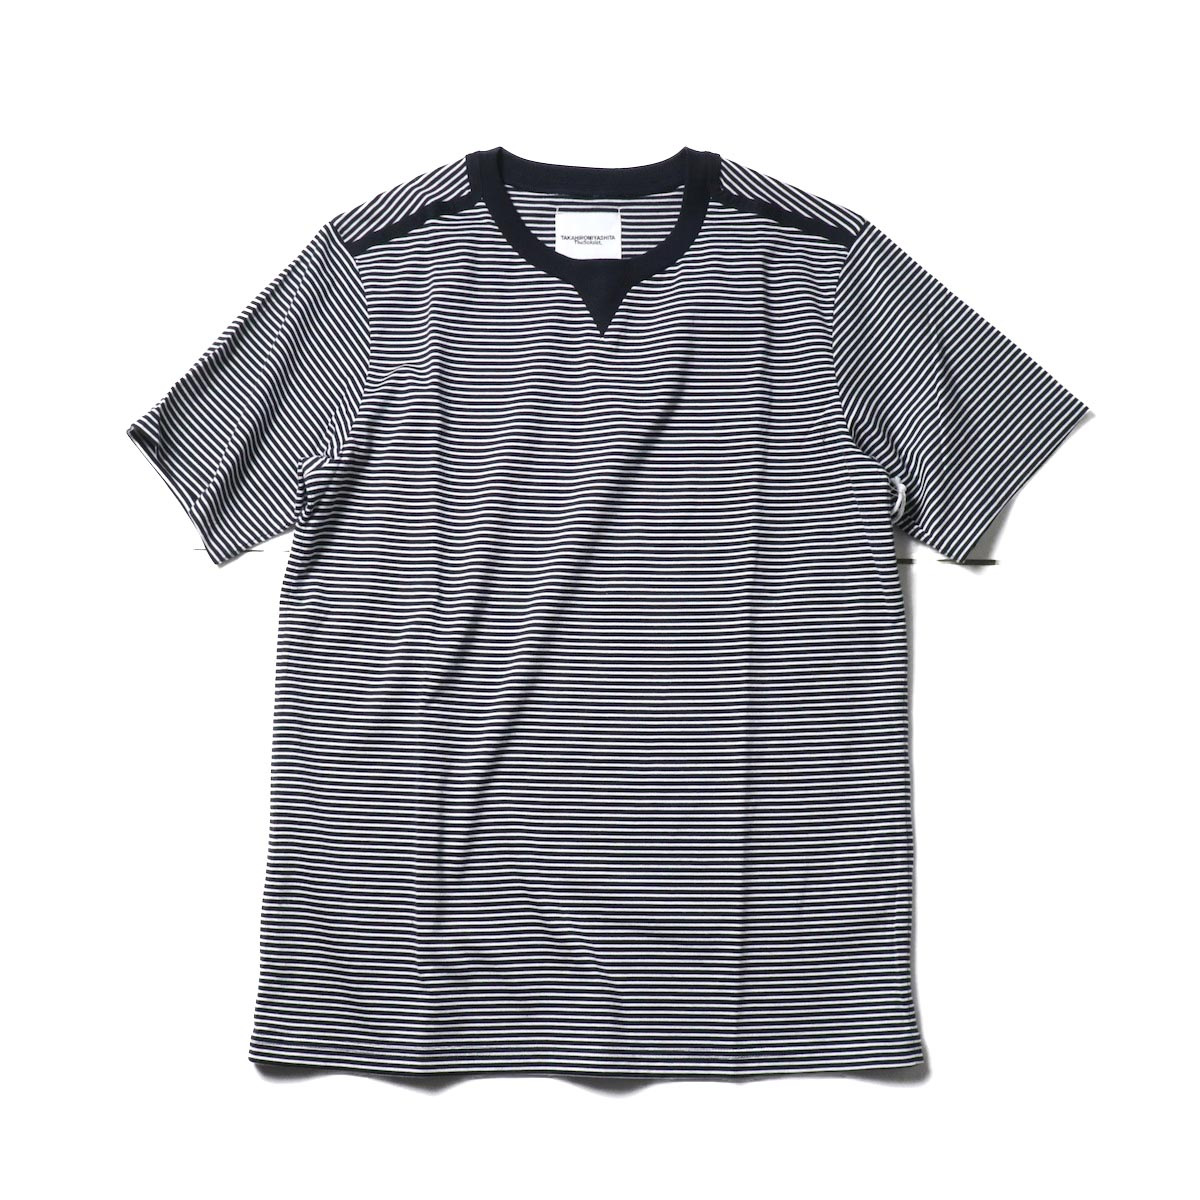 The Soloist / swc.0009a crew neck s/s striped tee. (Midnight × White)